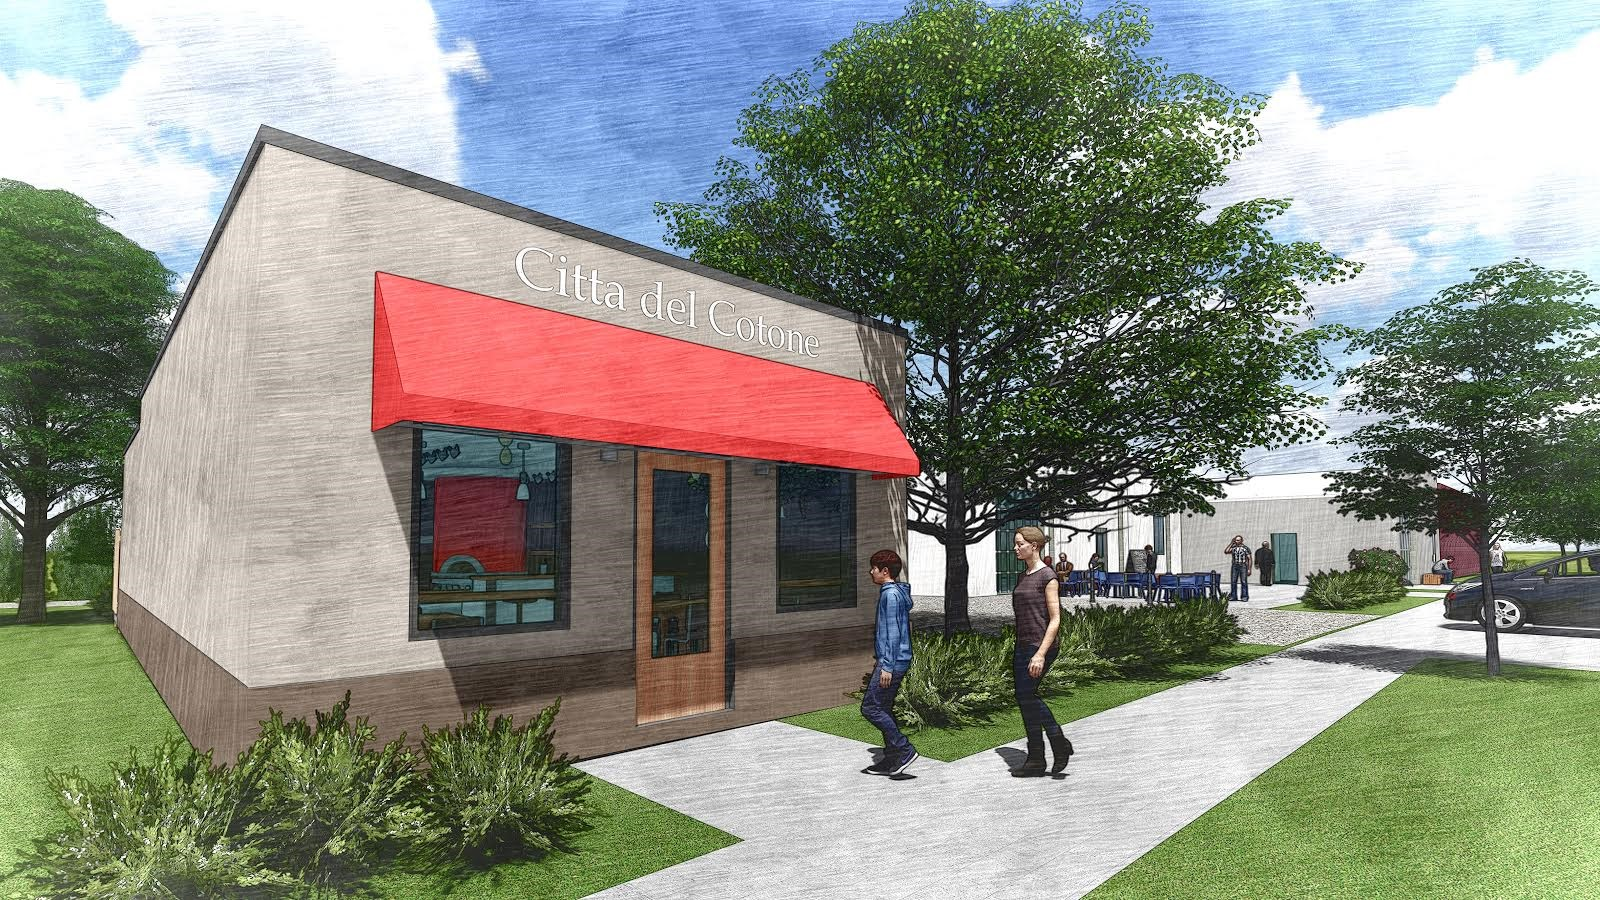 A rendering of Citta del Cotone, slated to open in September at 2150 Sumter St. in September. (Image/Provided)